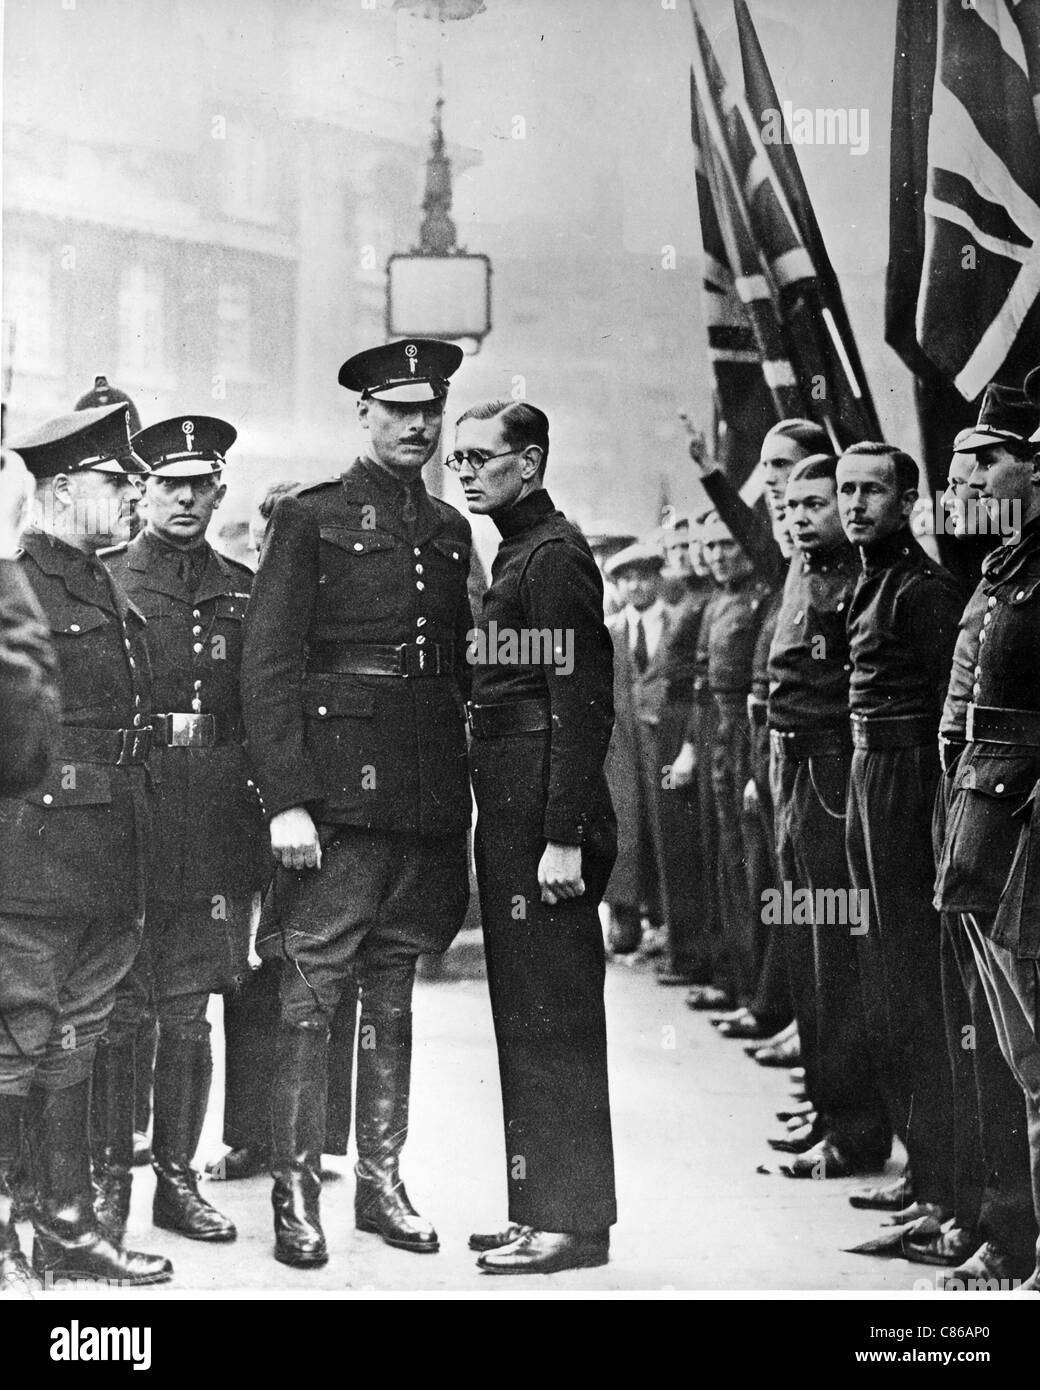 Oswald Mosley Stock Photos & Oswald Mosley Stock Images - Alamy